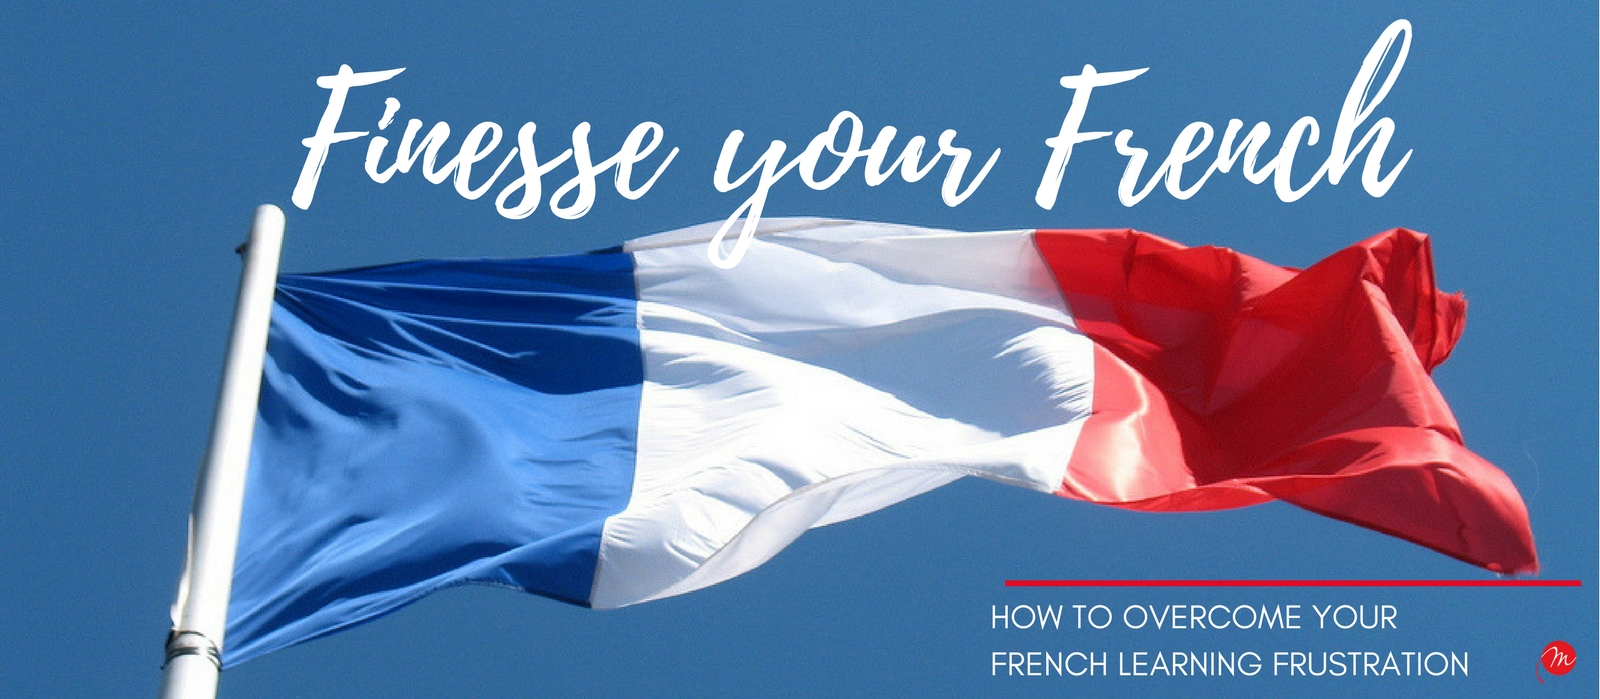 MyFrenchLife.org - My French Life™ - Finesse your French - How to overcome French learning Frustration - Header